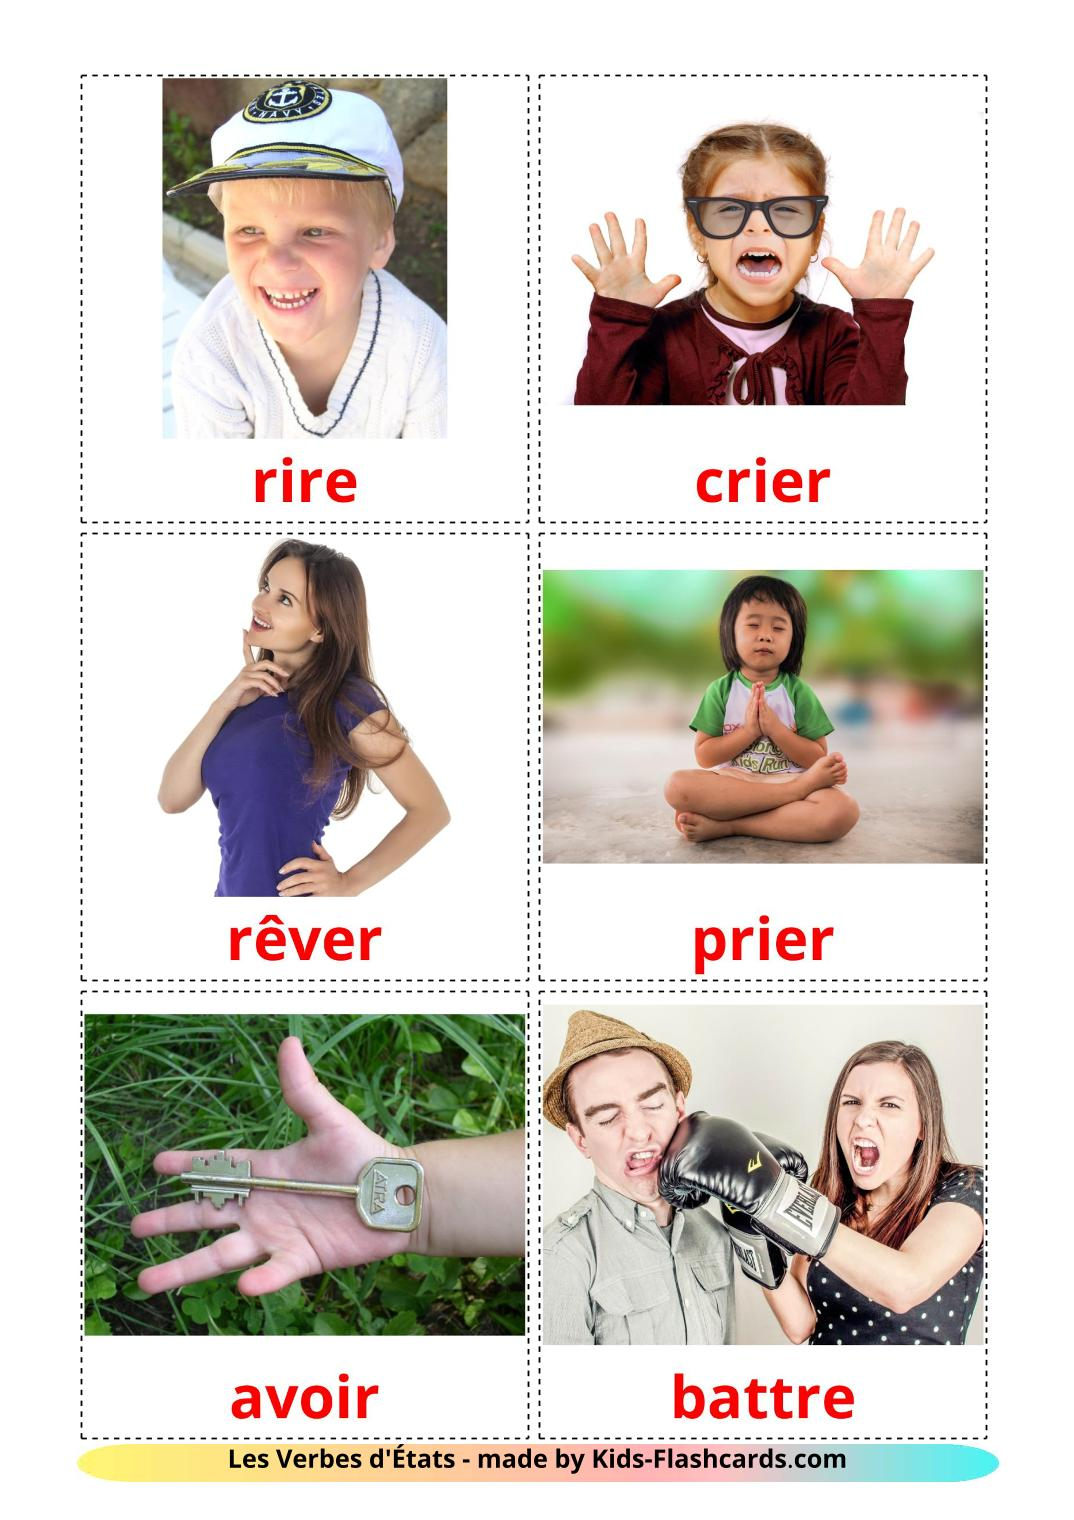 State verbs - 23 Free Printable french Flashcards